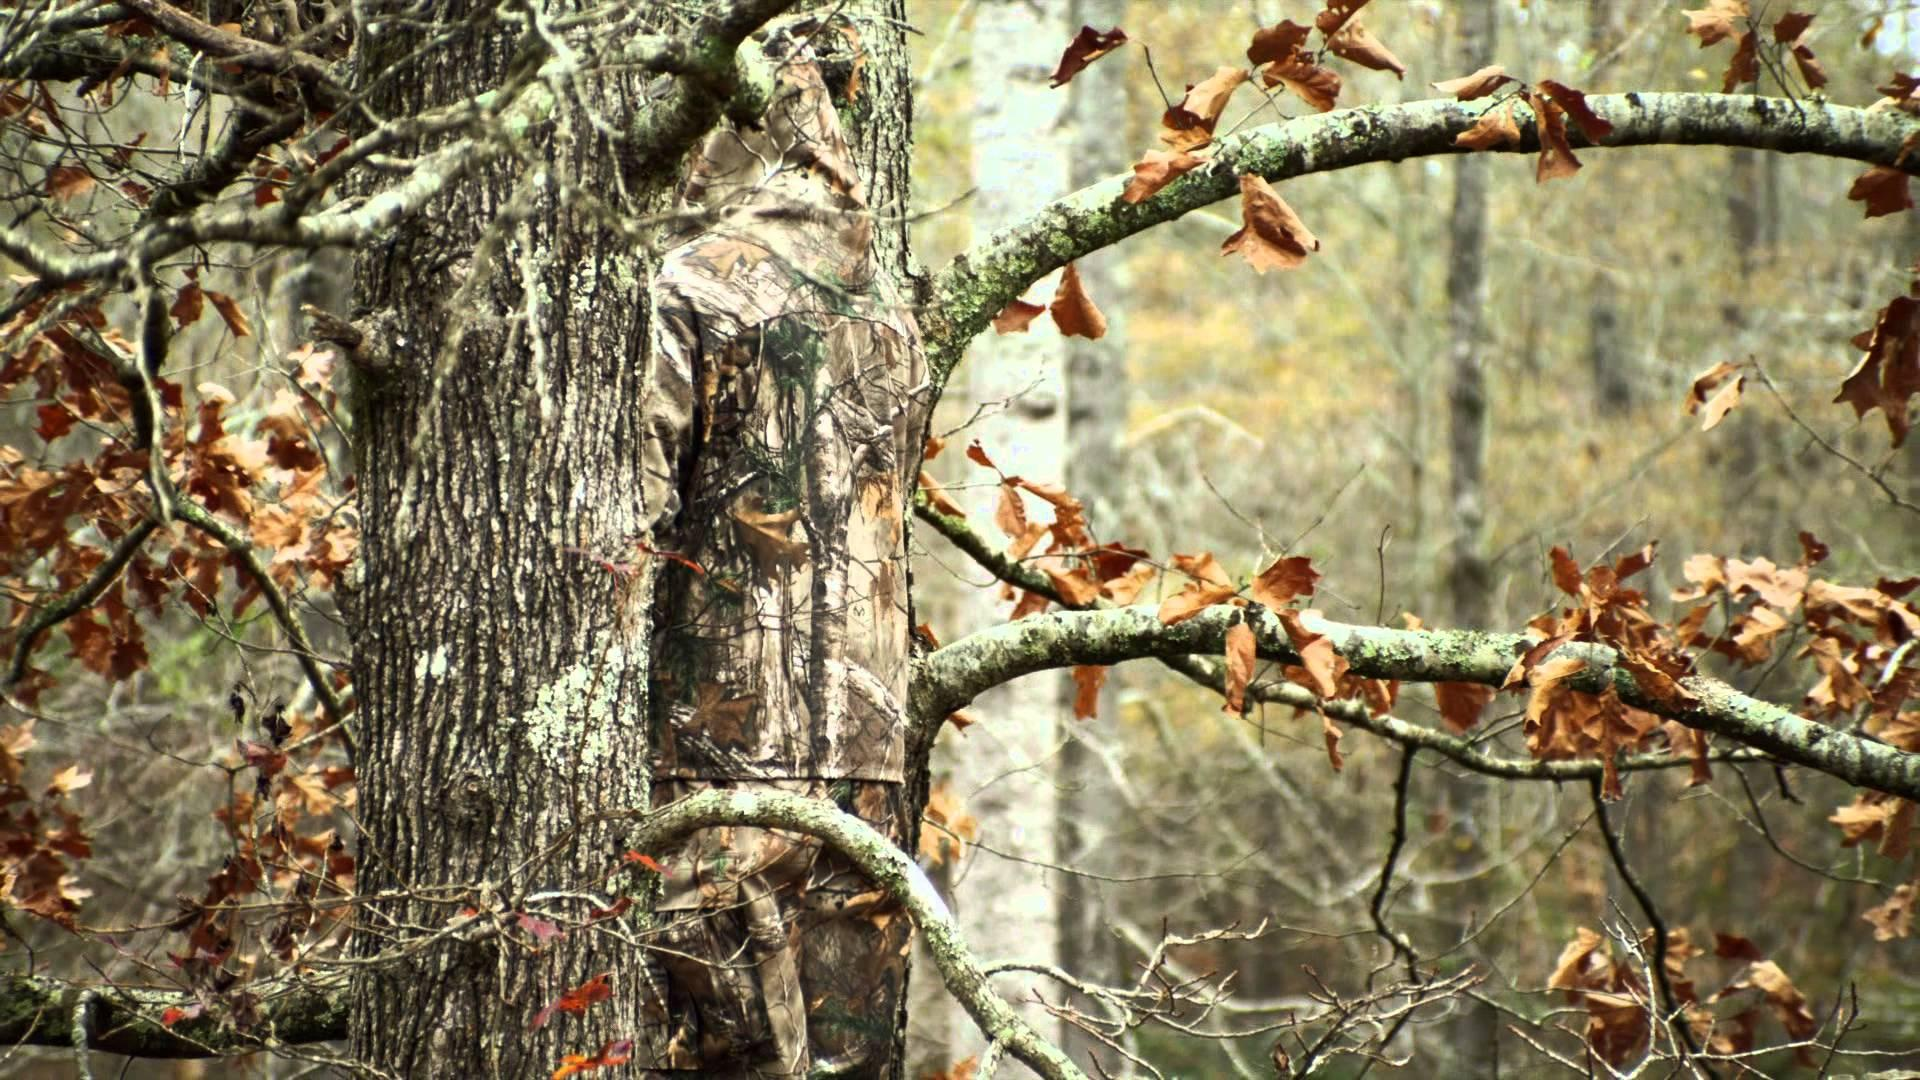 Download Realtree Camo Iphone Wallpaper Hd Backgrounds